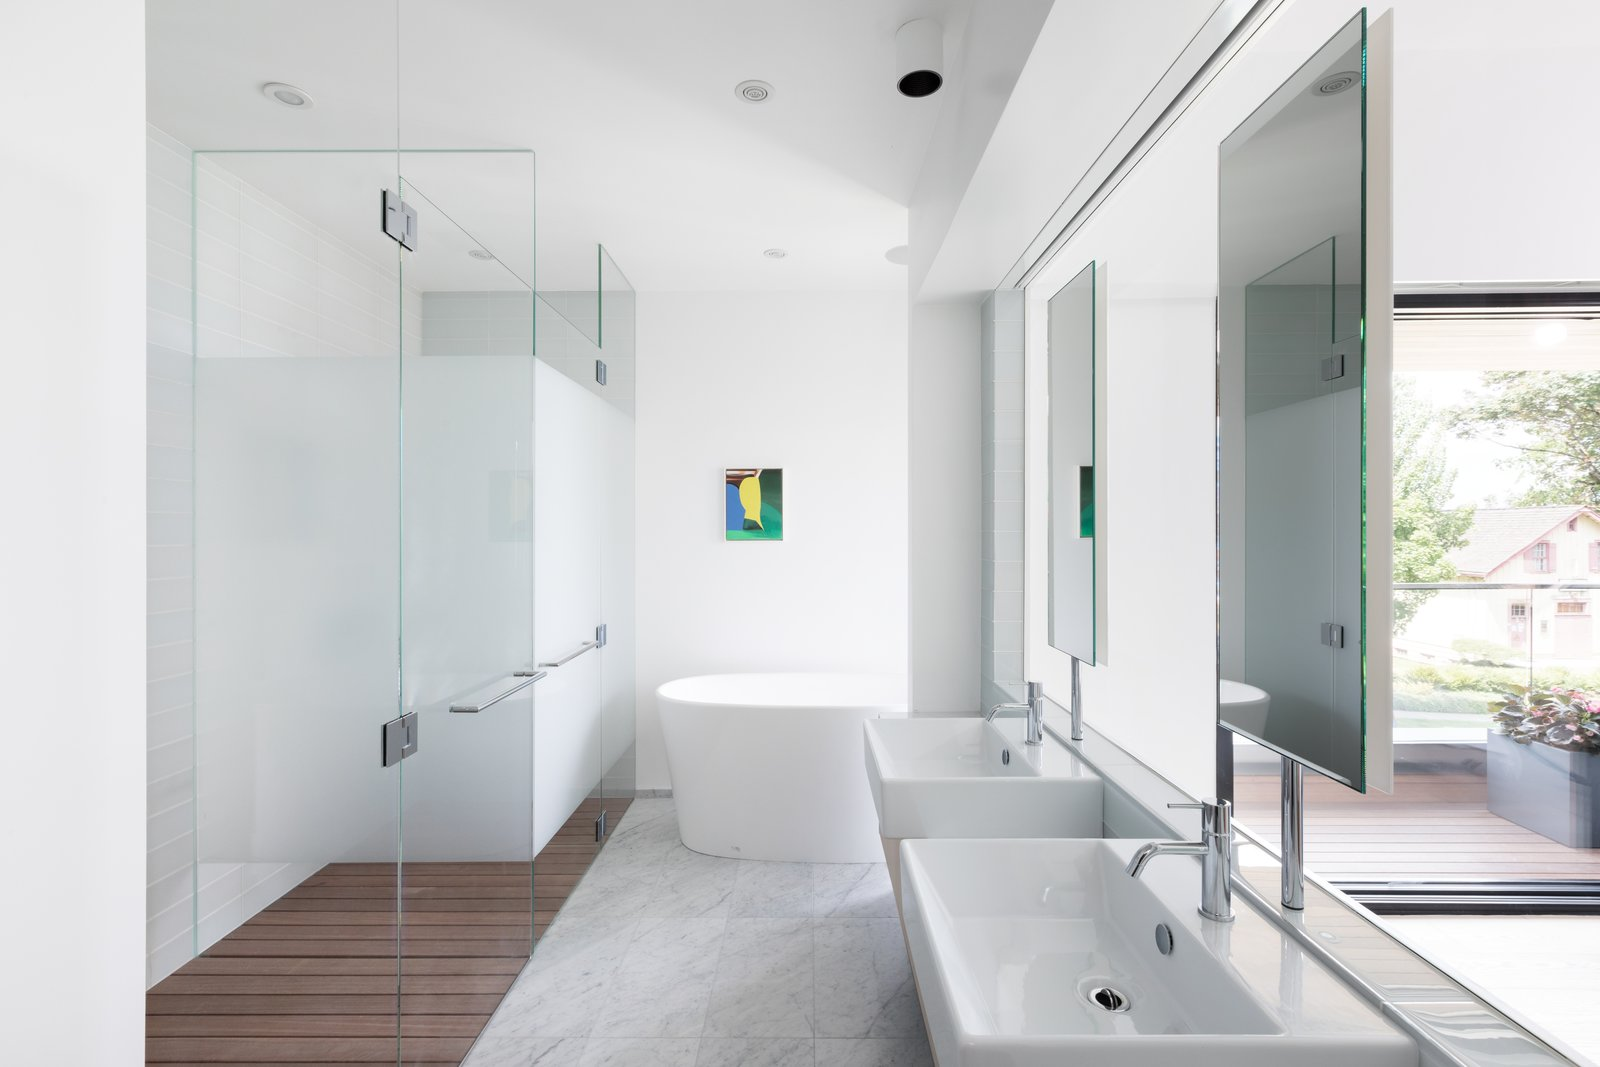 Bath, Full, Freestanding, Wall Mount, Medium Hardwood, Ceiling, Recessed, and Marble  Best Bath Ceiling Medium Hardwood Wall Mount Recessed Marble Photos from Wrapped in Galvanized Steel, 'Cube House' in Vancouver Asks $12.8M